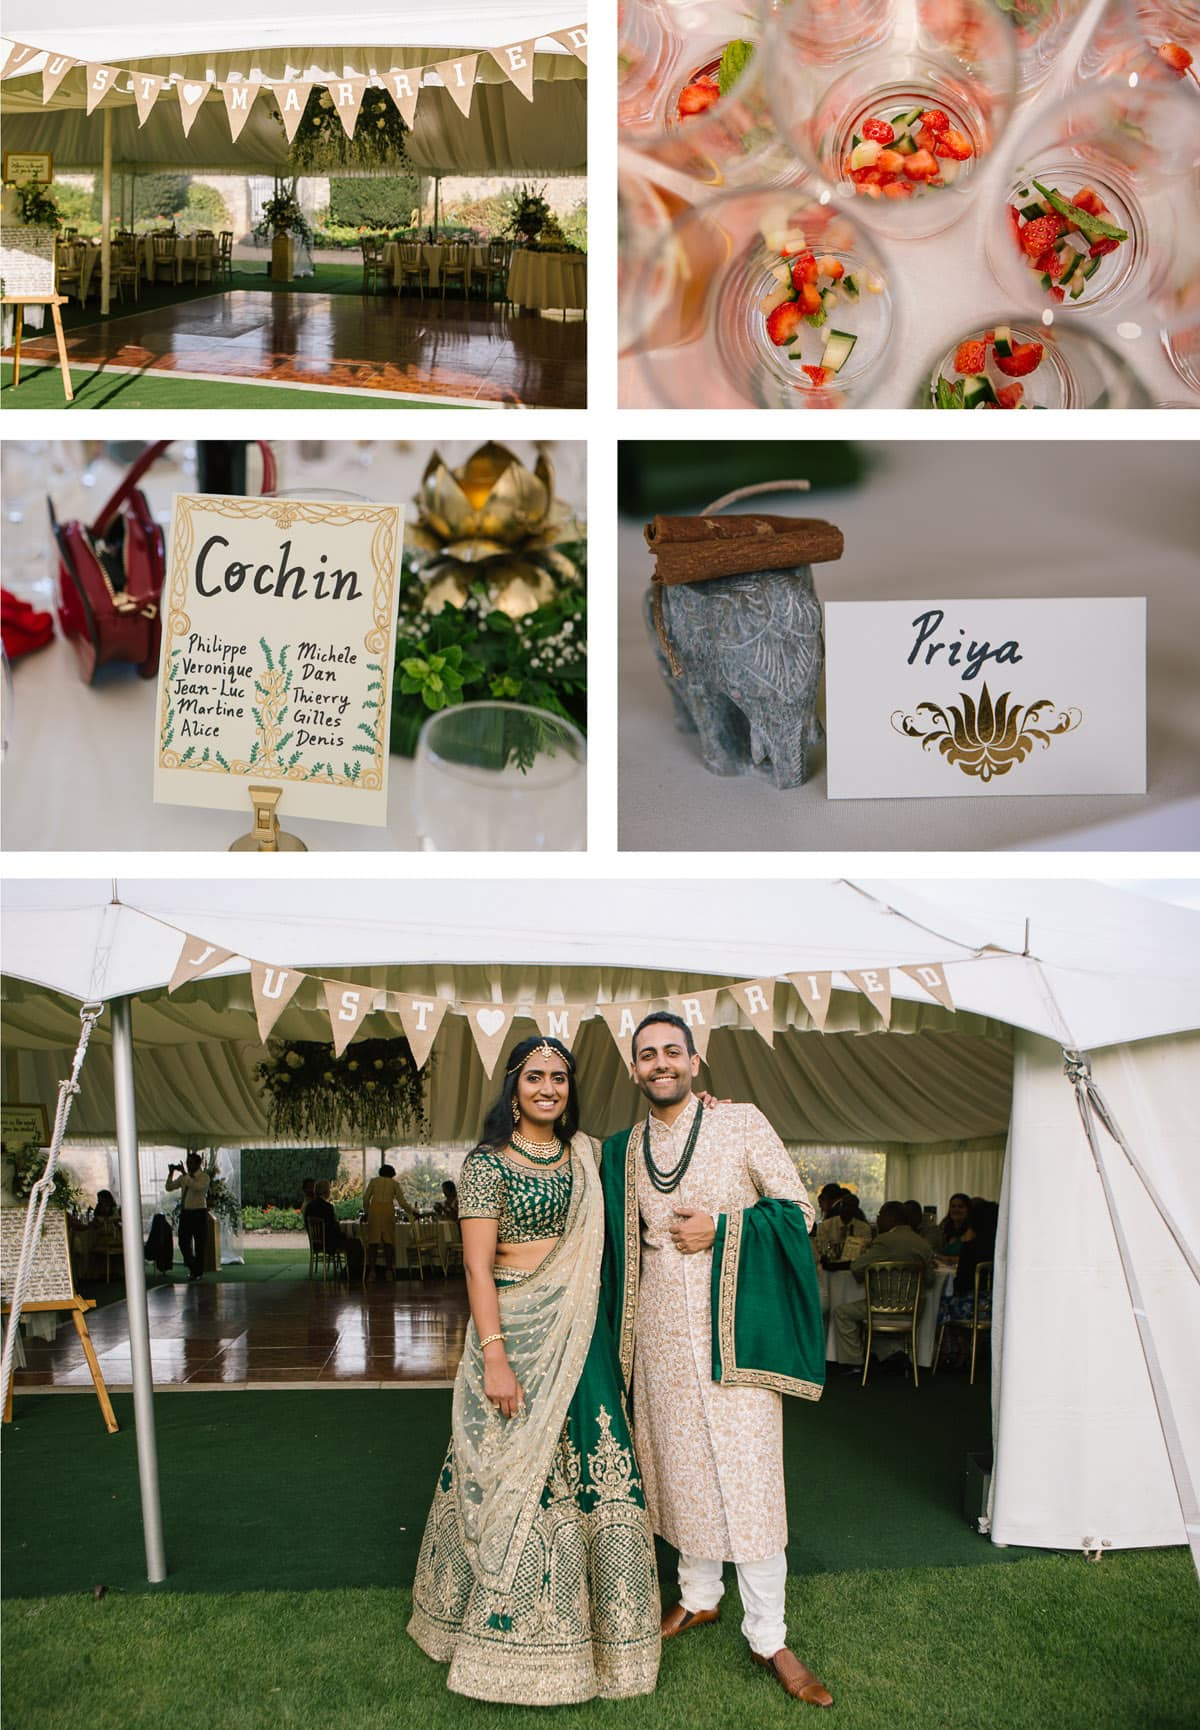 Collage of details from marquee reception at Indian wedding at Christchurch College